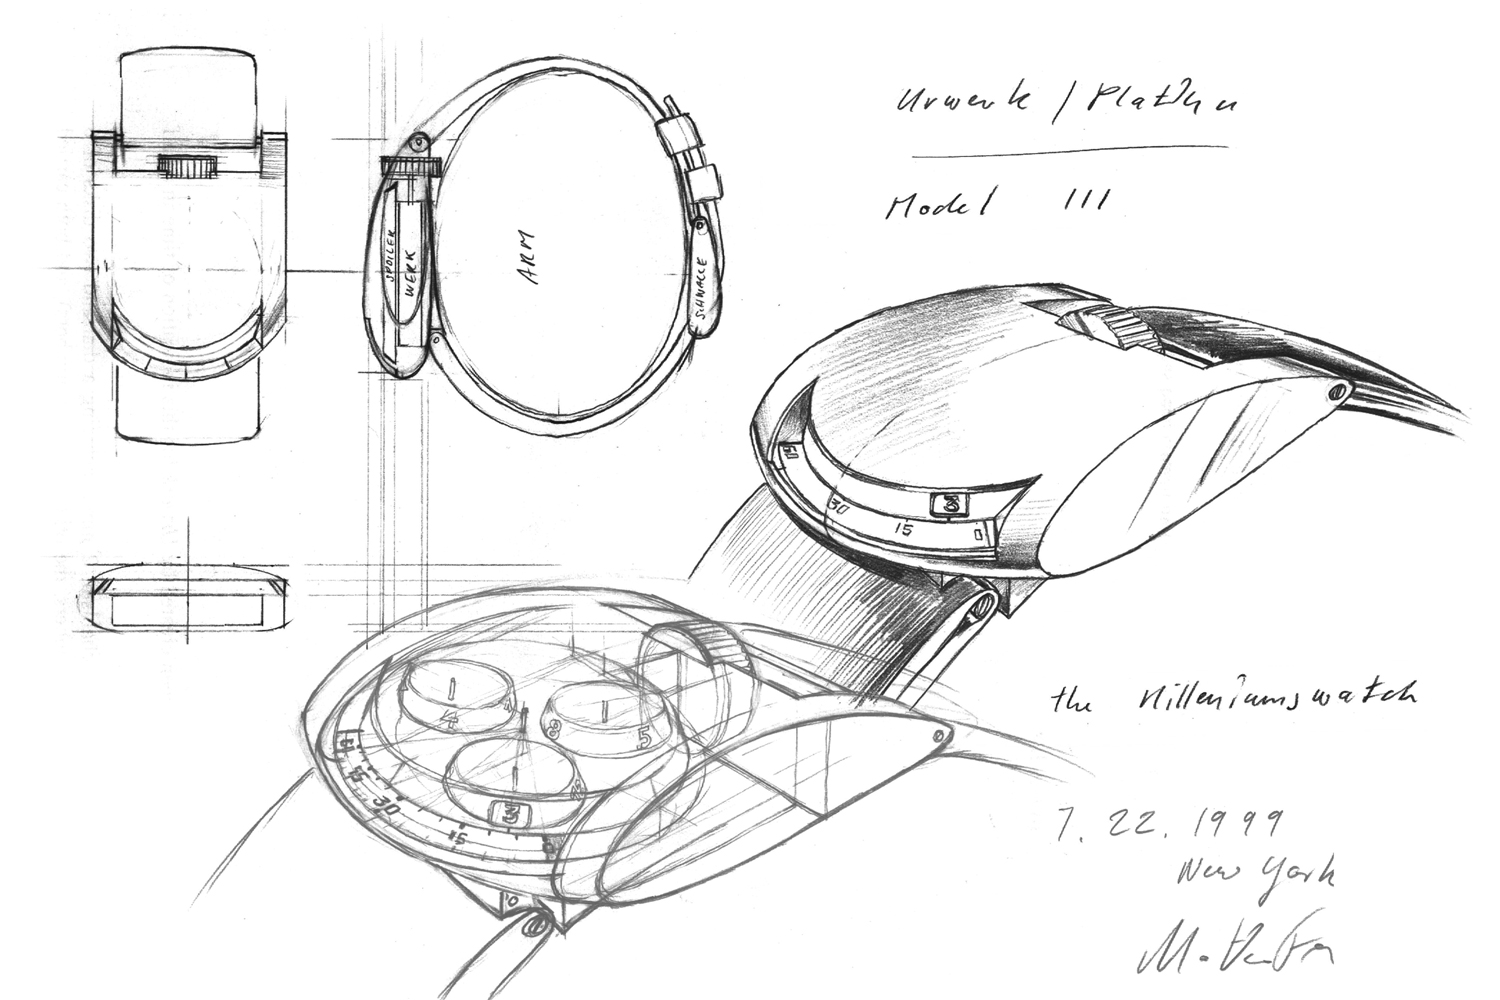 Some of Frei's earliest hand-drawn sketches for what would become the UR-103.